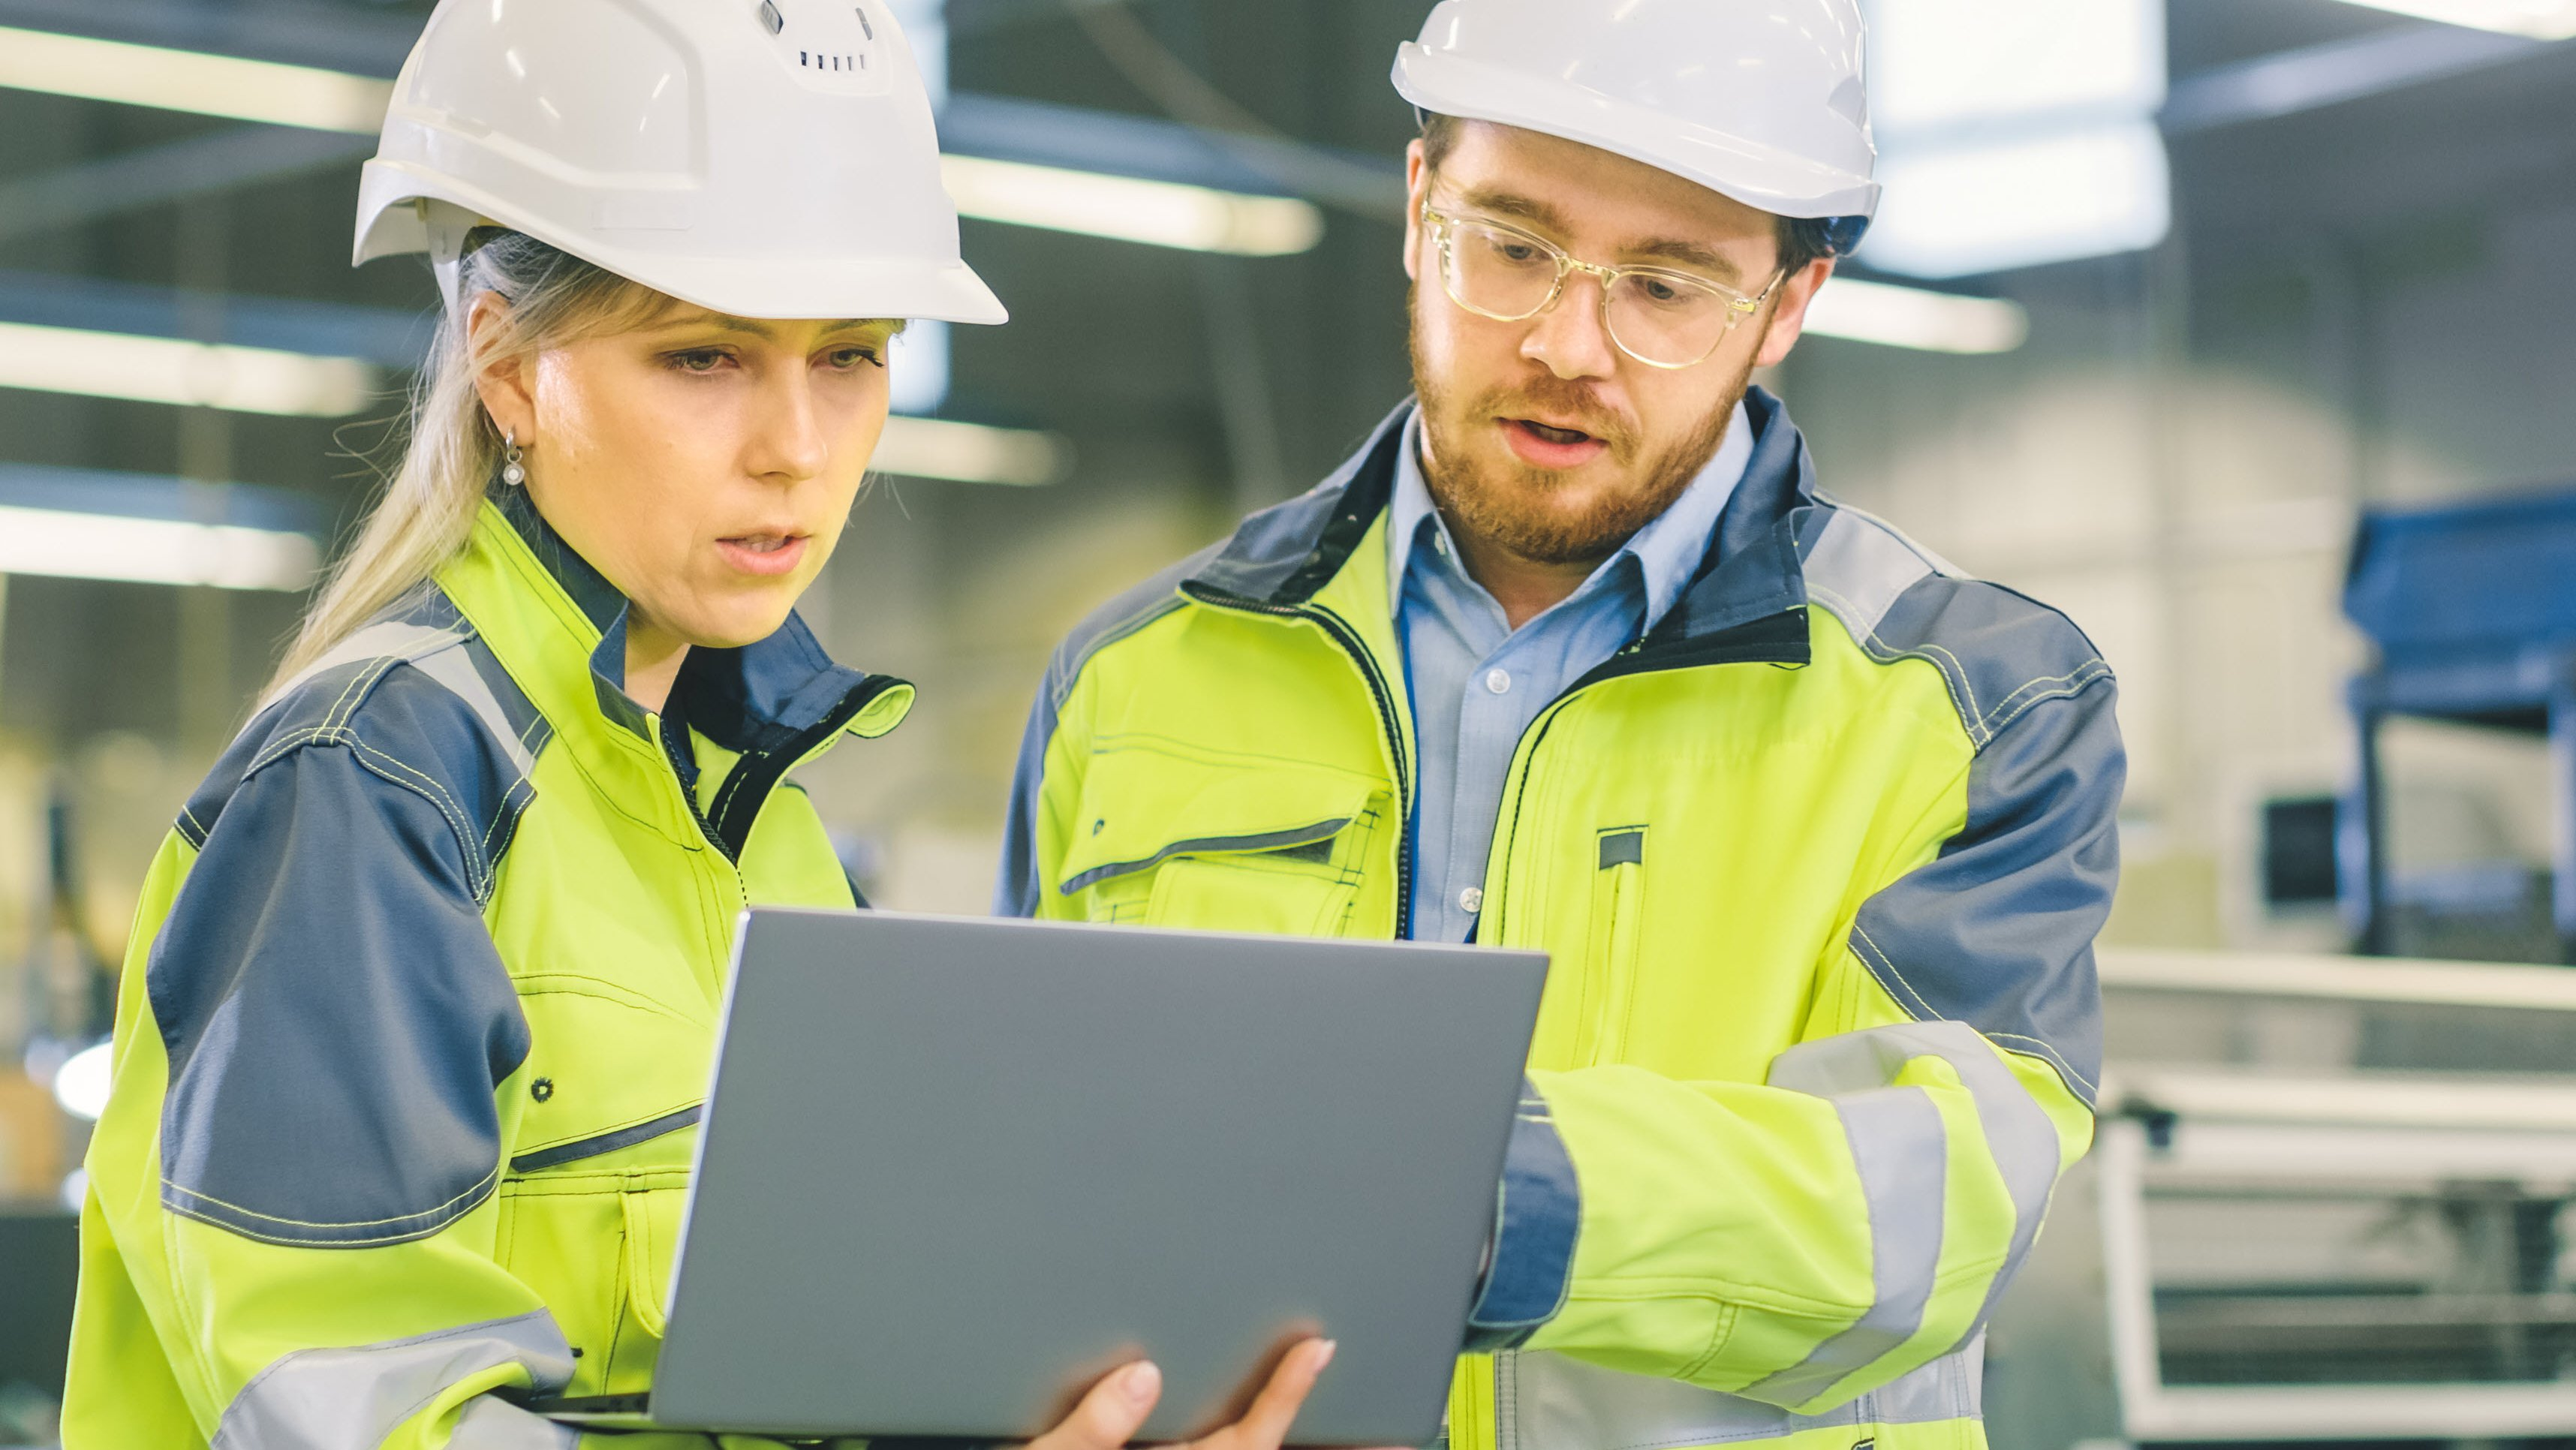 Digital Transformation and Mining Workforce Shifts